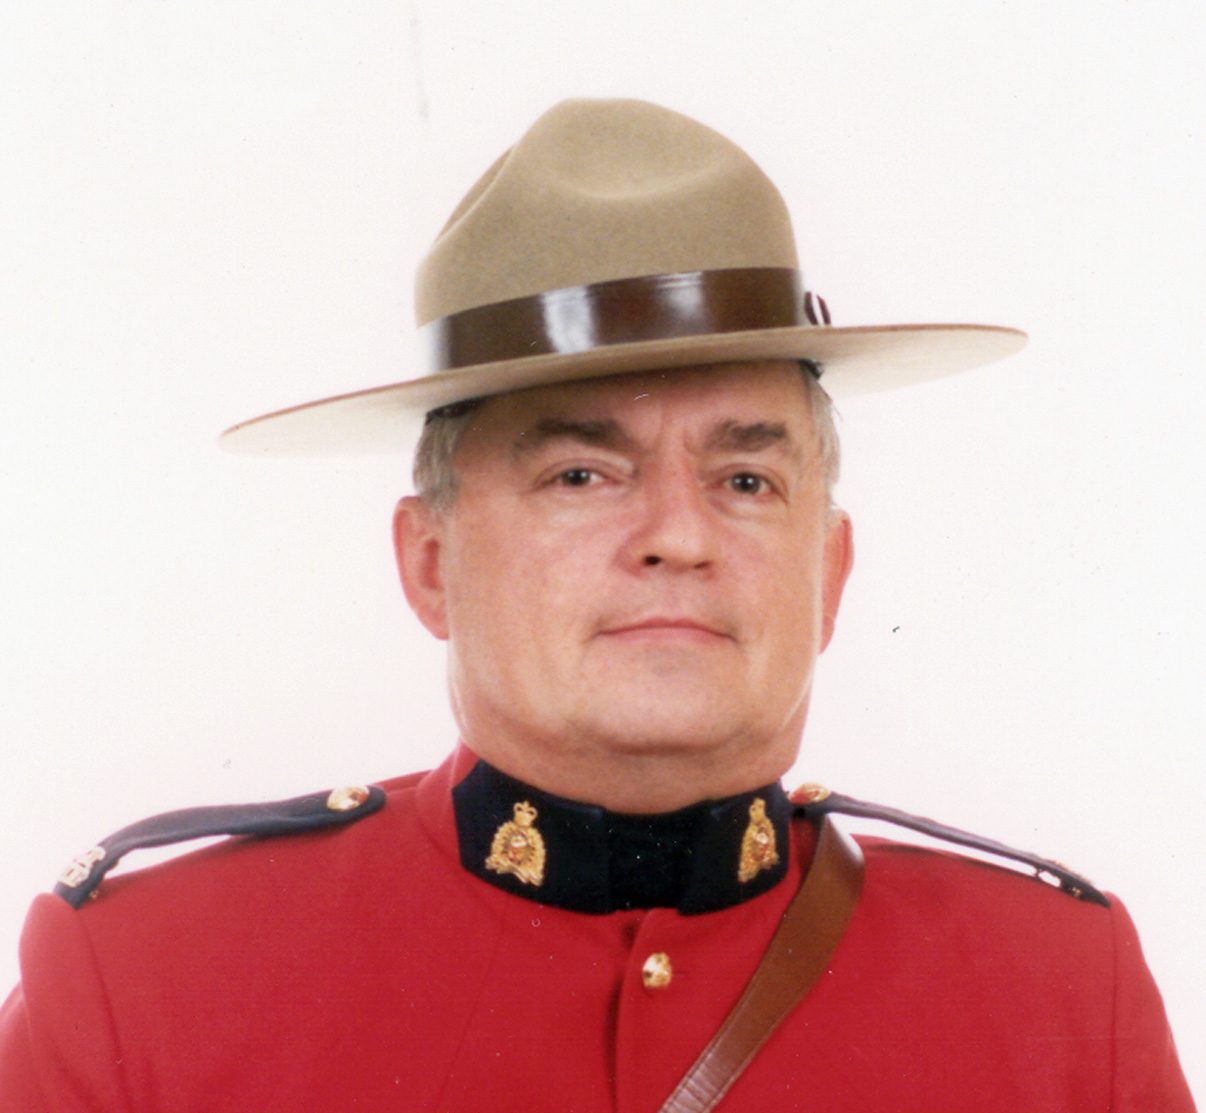 Sergeant Derek Cameron Burkholder – © Her Majesty the Queen in Right of Canada as represented by the Royal Canadian Mounted Police